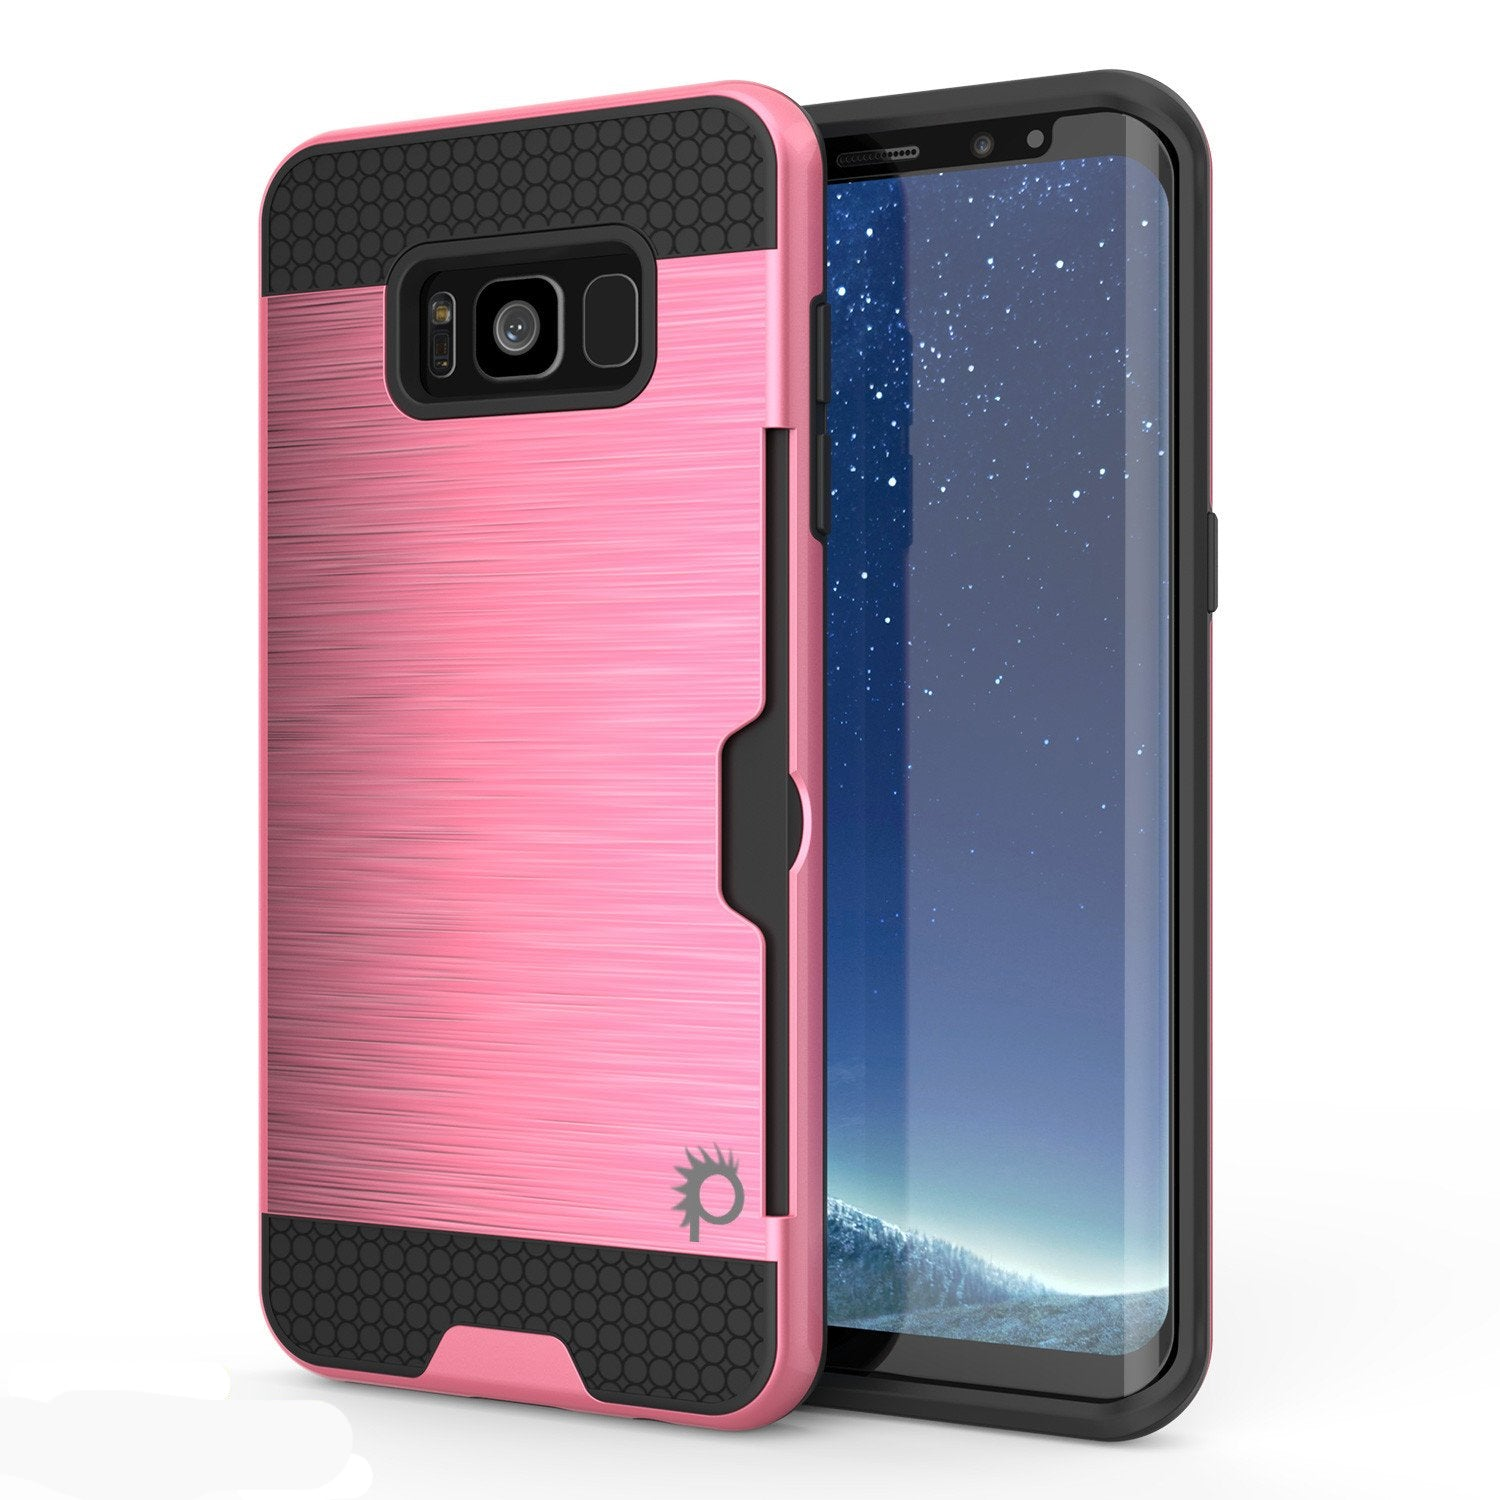 Galaxy S8 Case PunkCase SLOT Pink Series Slim Armor Soft Cover Case